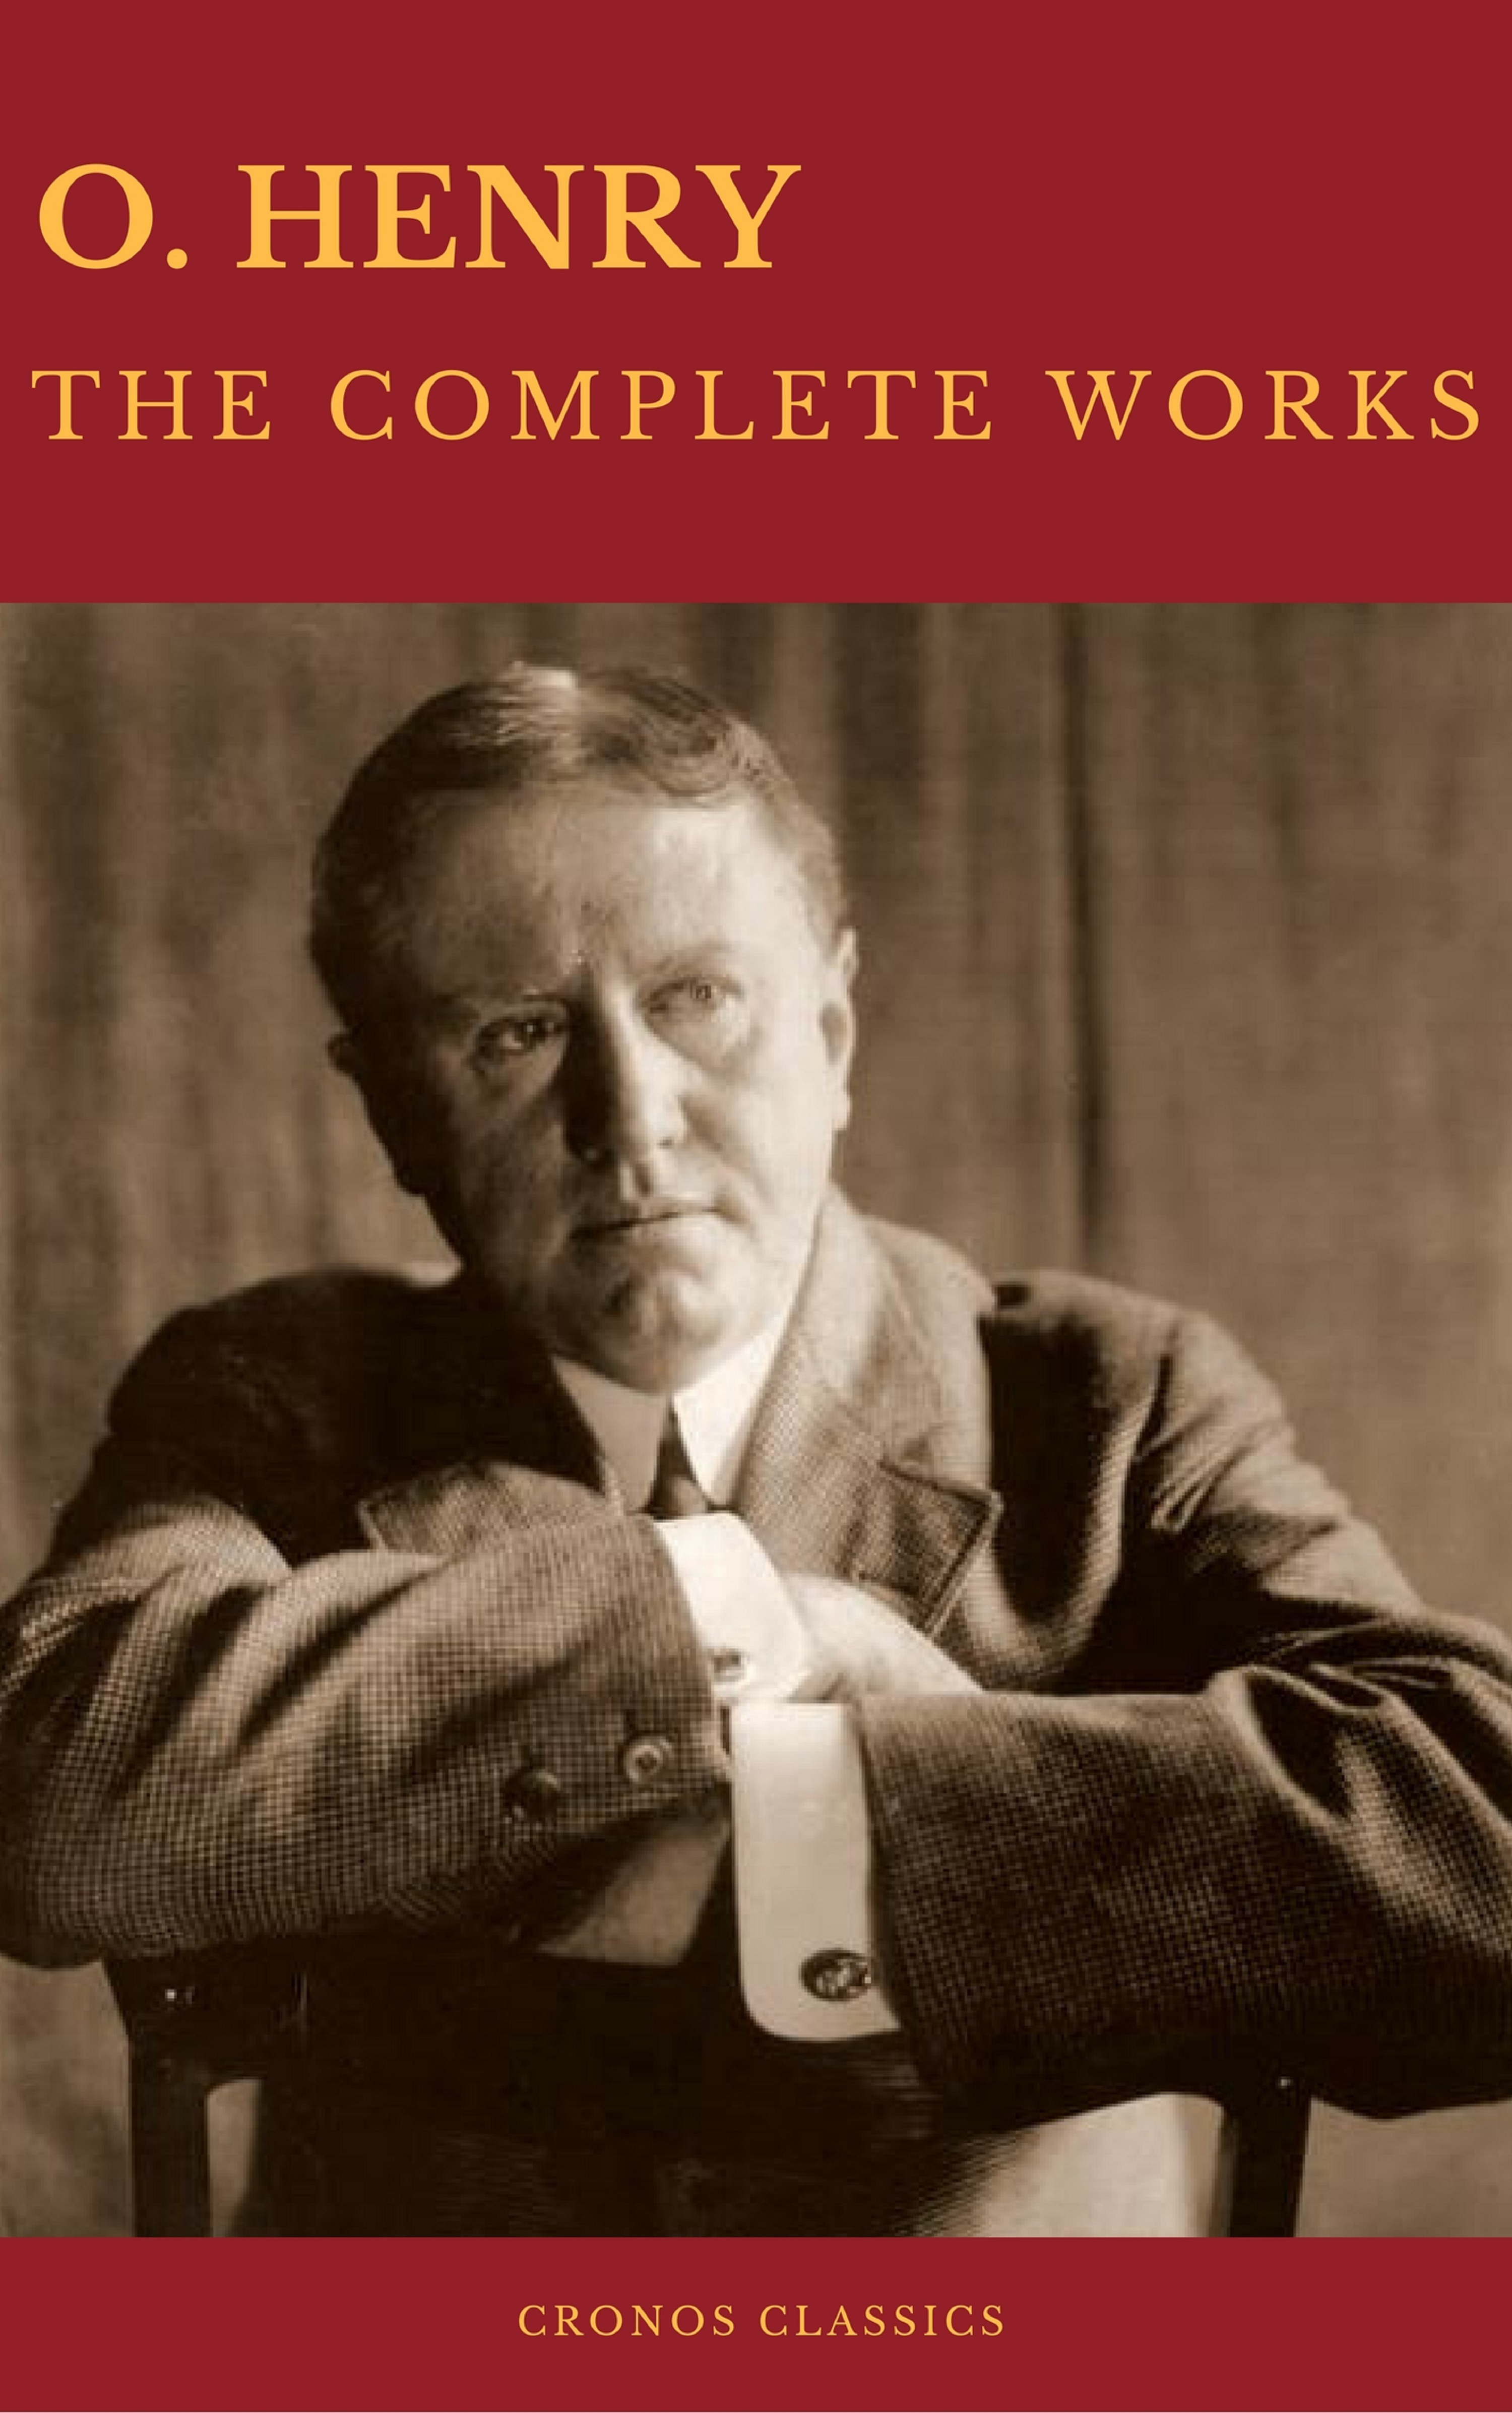 цена на O. Hooper Henry The Complete Works of O. Henry: Short Stories, Poems and Letters (Best Navigation, Active TOC) (Cronos Classics)